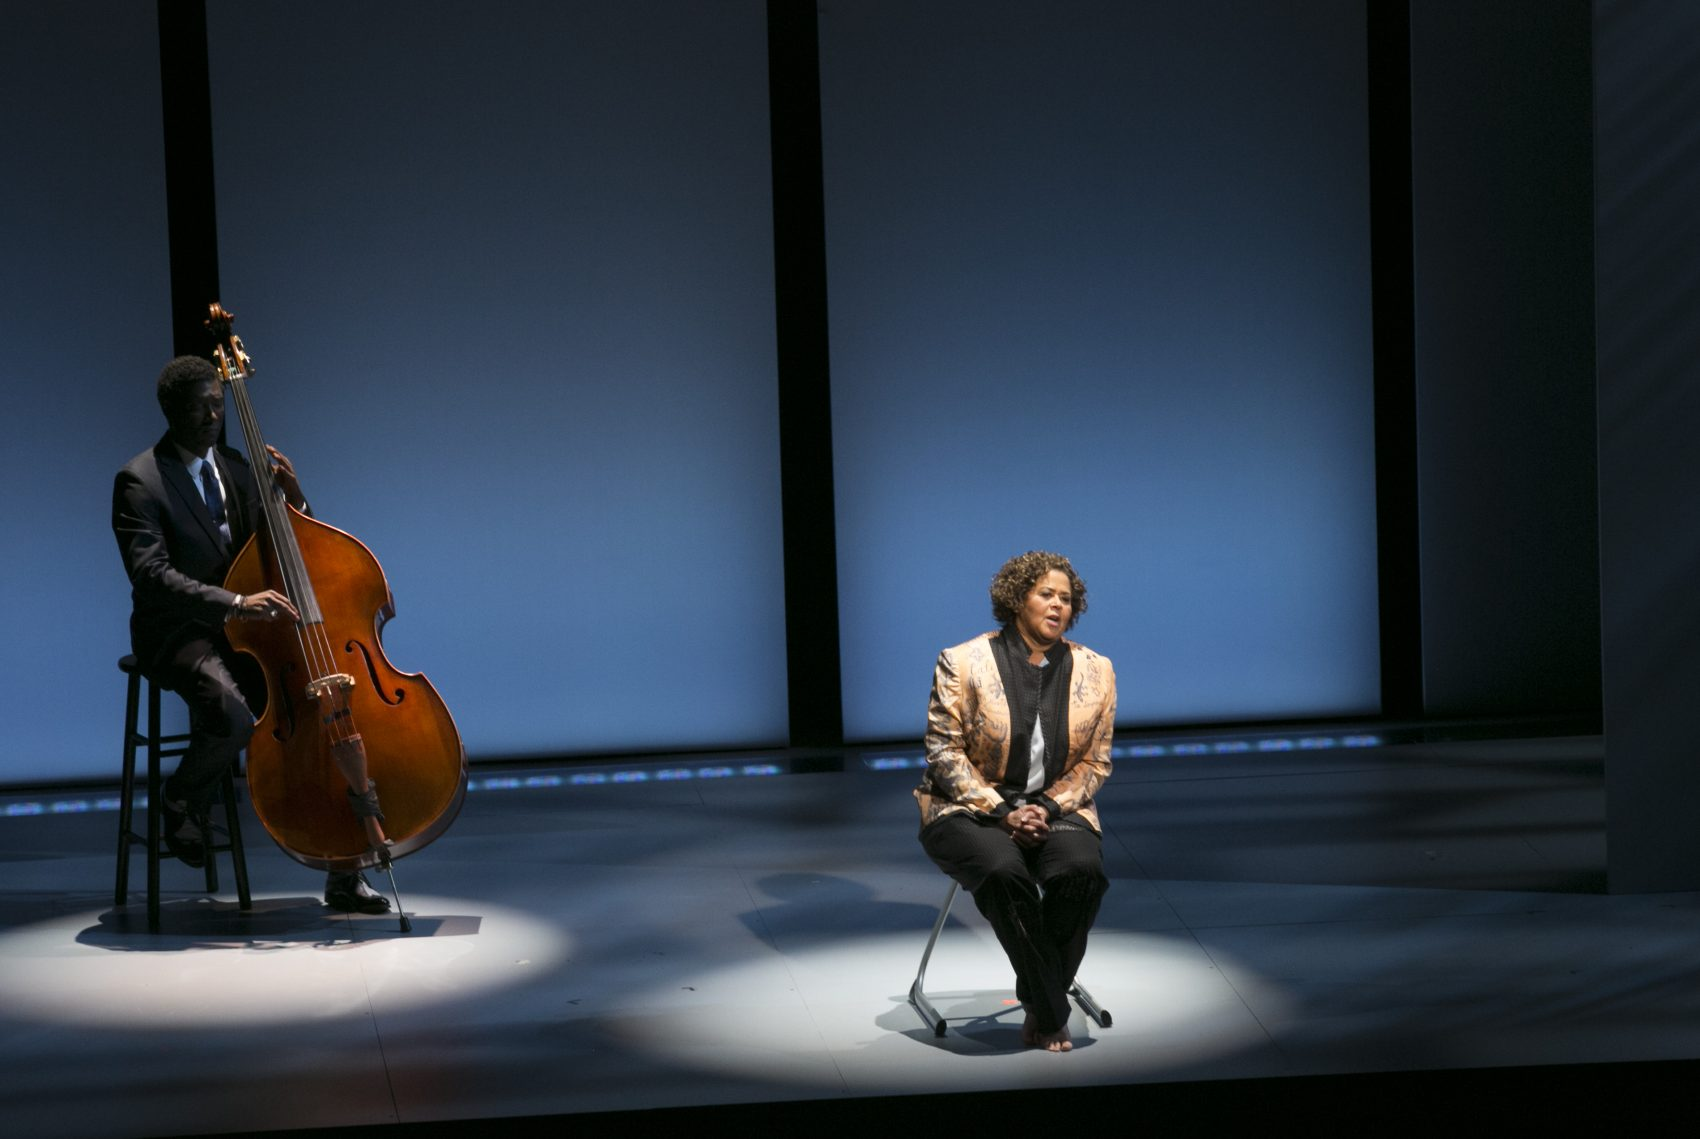 """Marcus Shelby (left) accompanies Anna Deavere Smith in """"Notes from the Field: Doing Time in Education"""" at the American Repertory Theater in Cambridge, Massachusetts. (Courtesy Evgenia Eliseeva/A.R.T.)"""